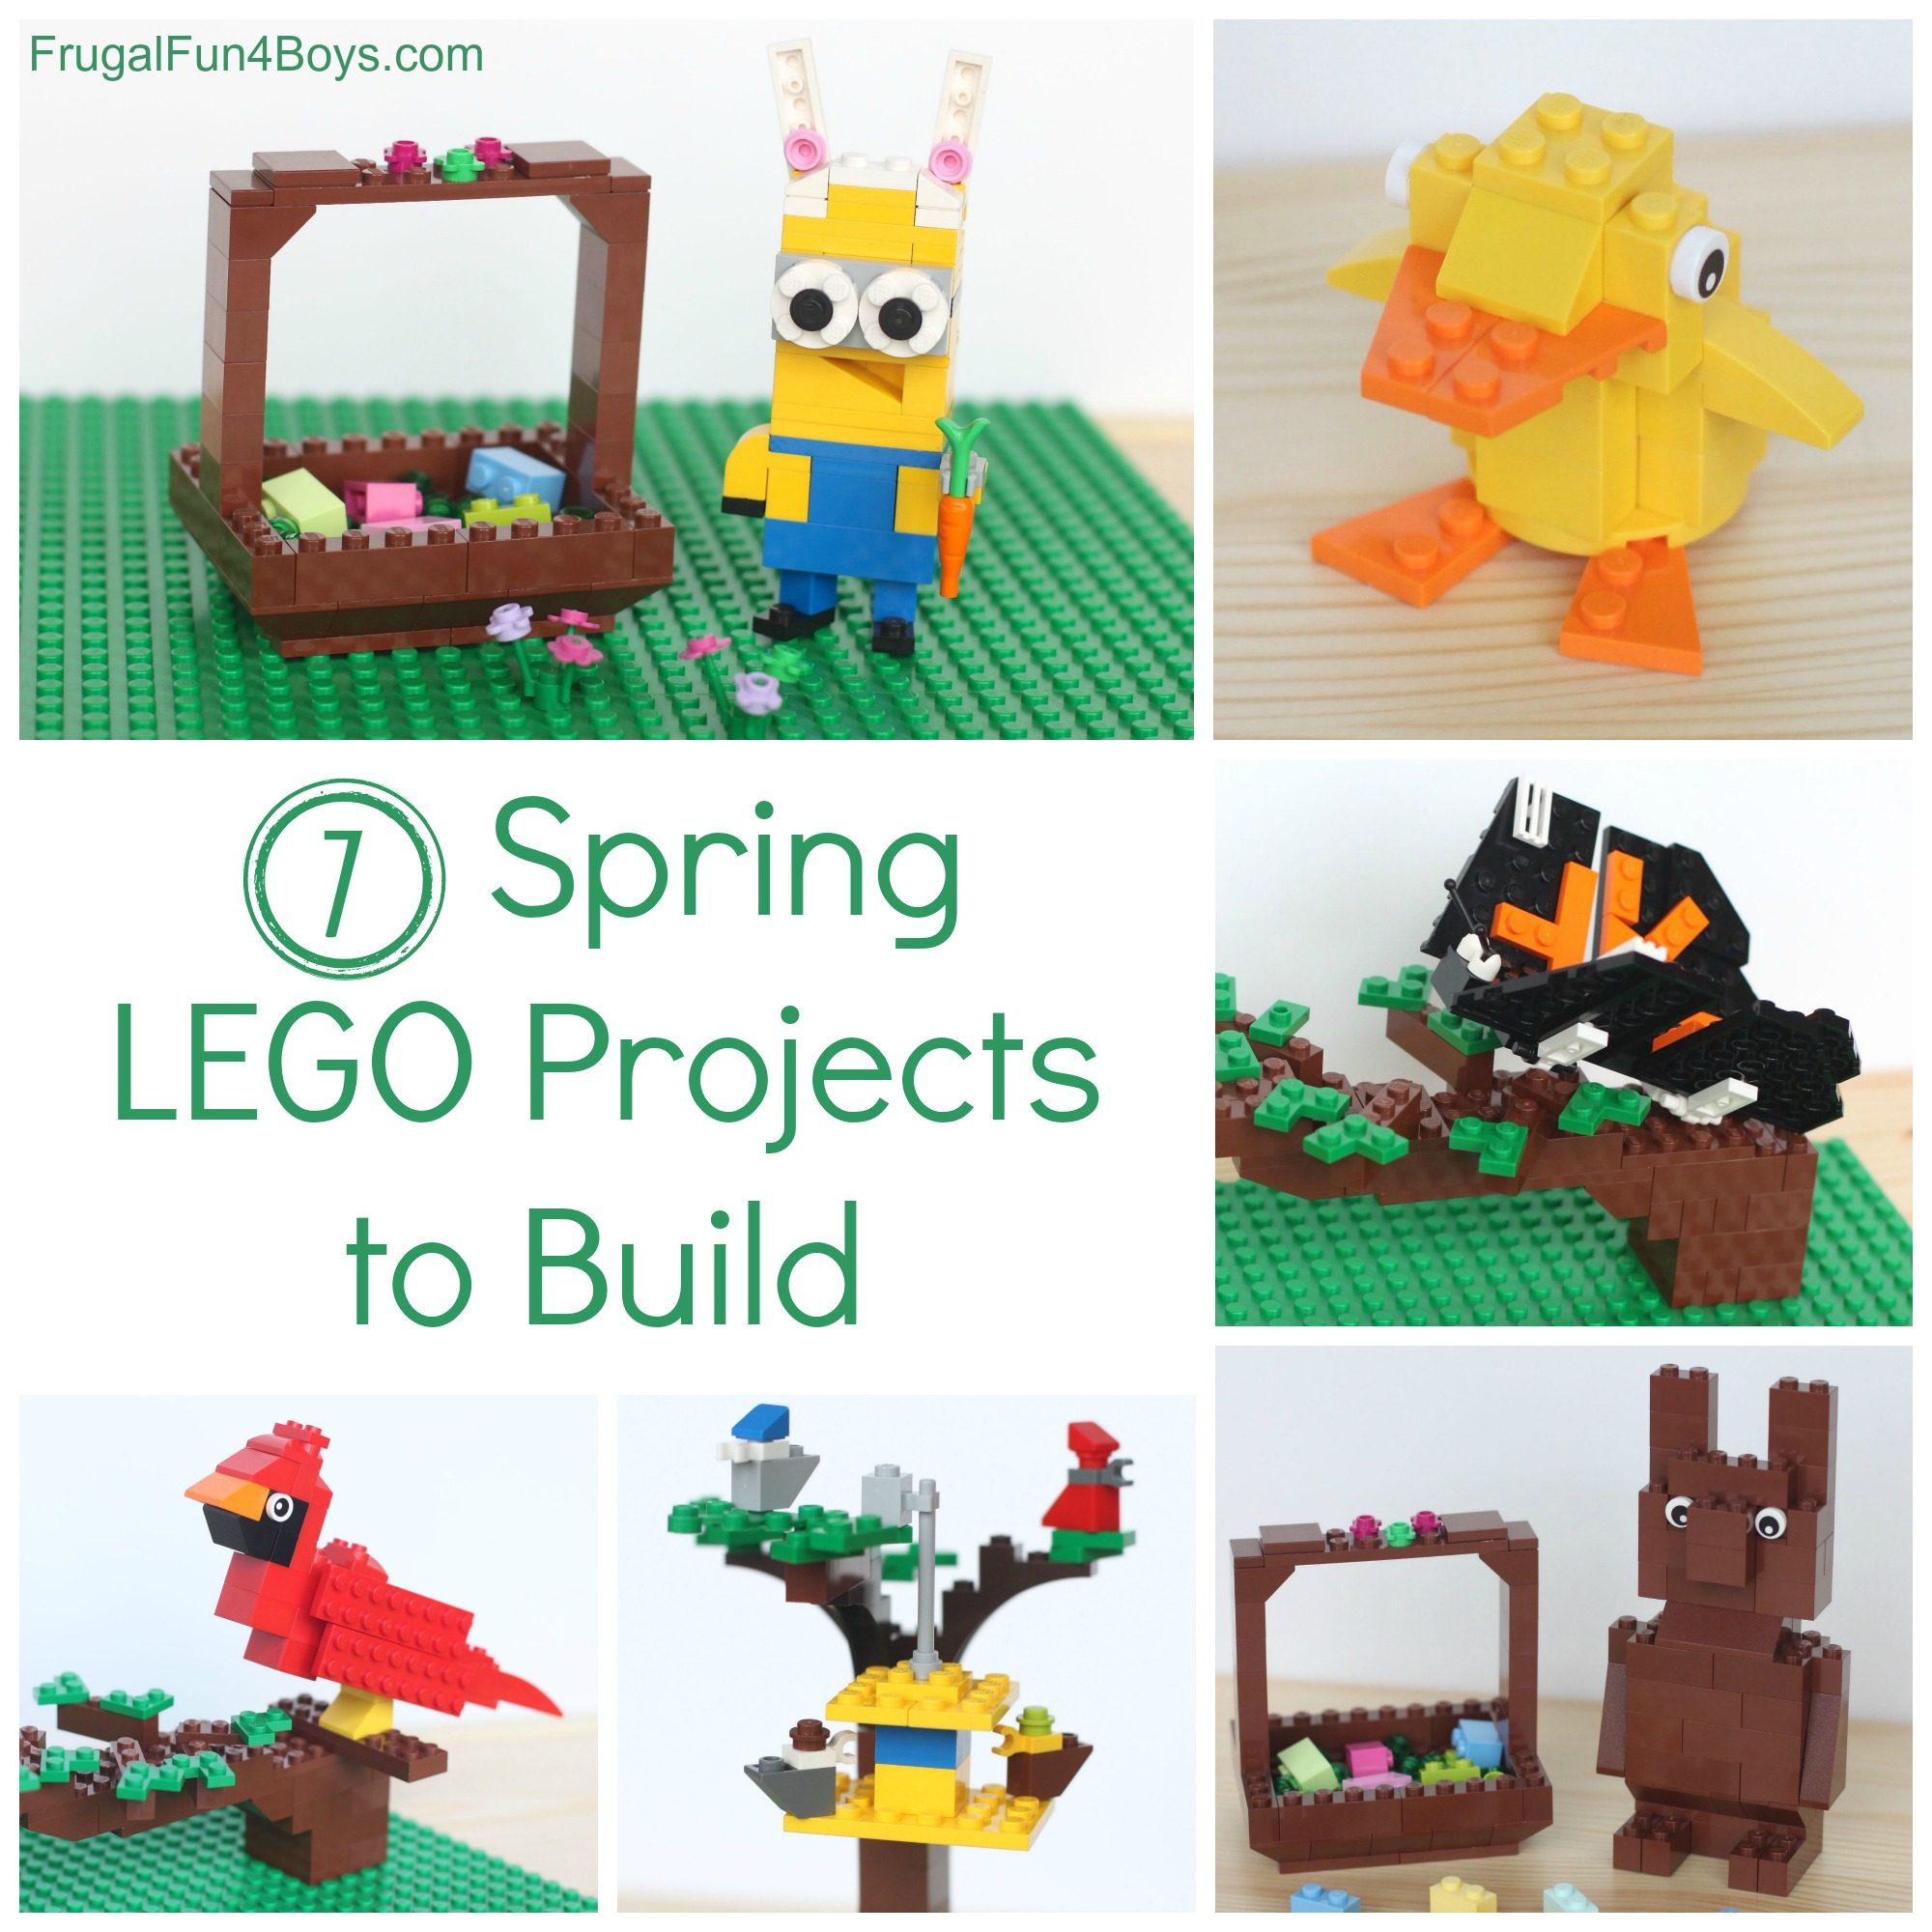 Seven spring lego ideas projects to build with instructions for Lego crafts for kids